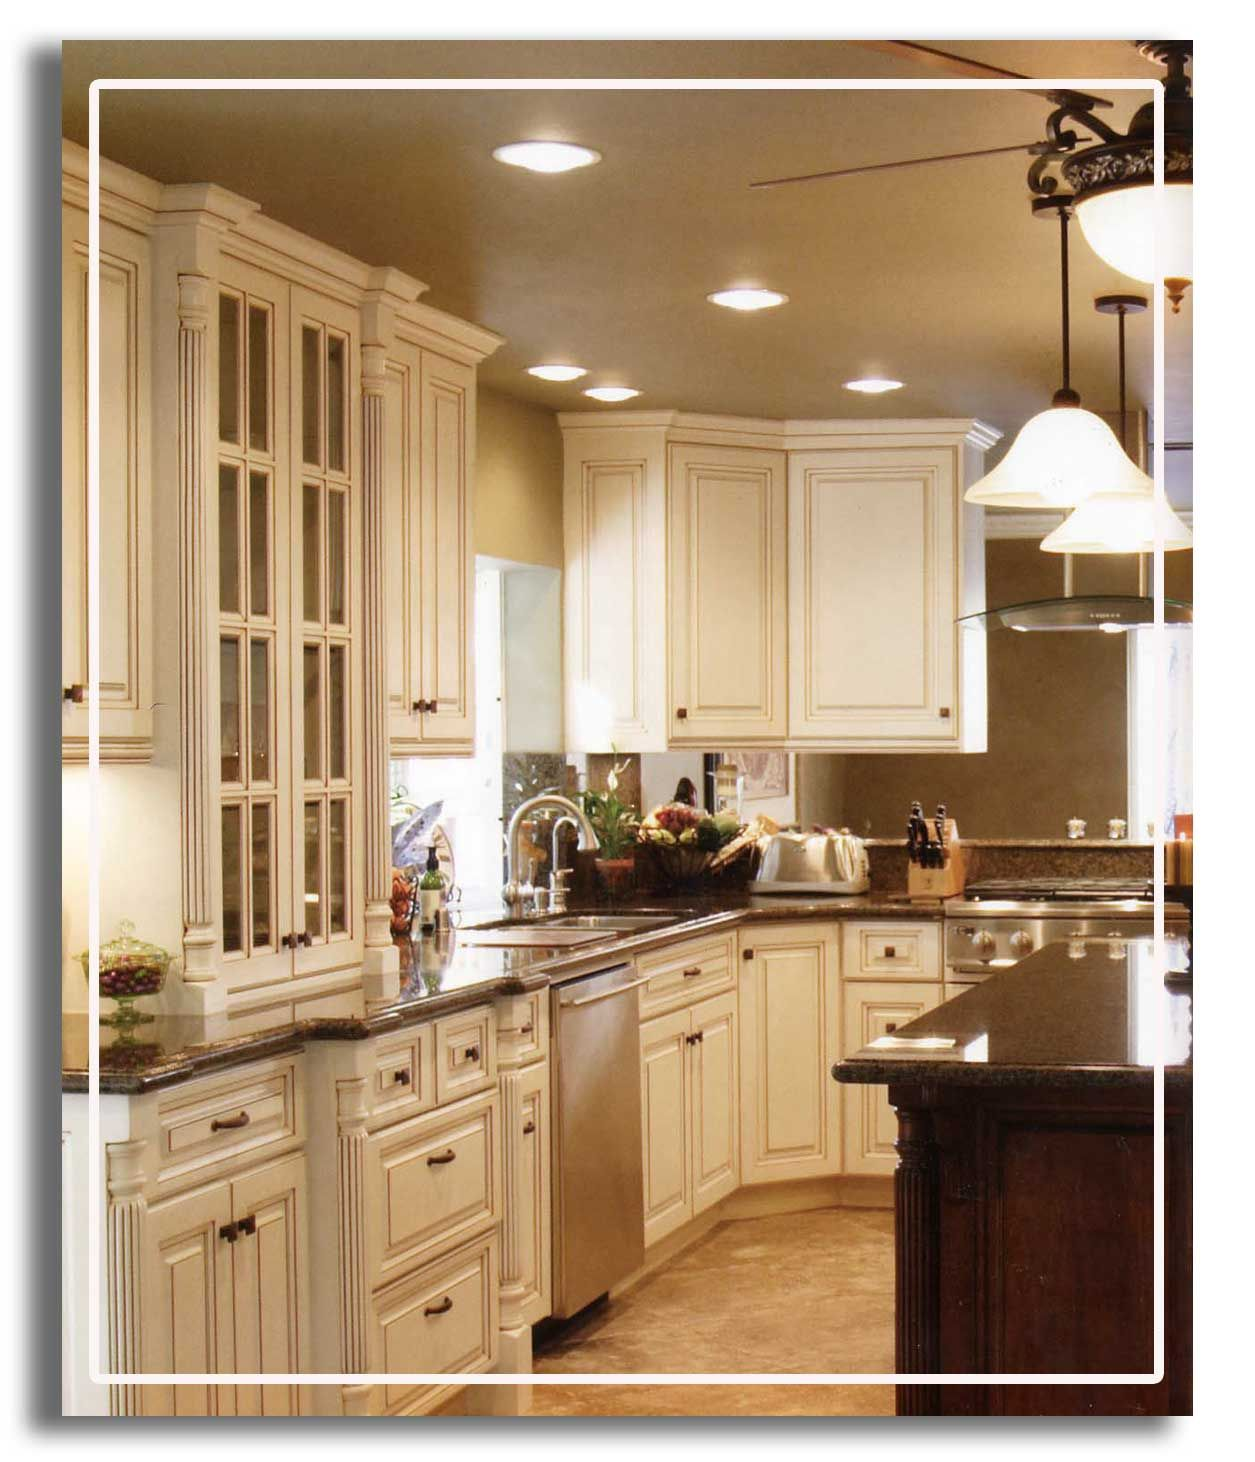 this is exactly the kitchen i would choose!!! i love the ivory